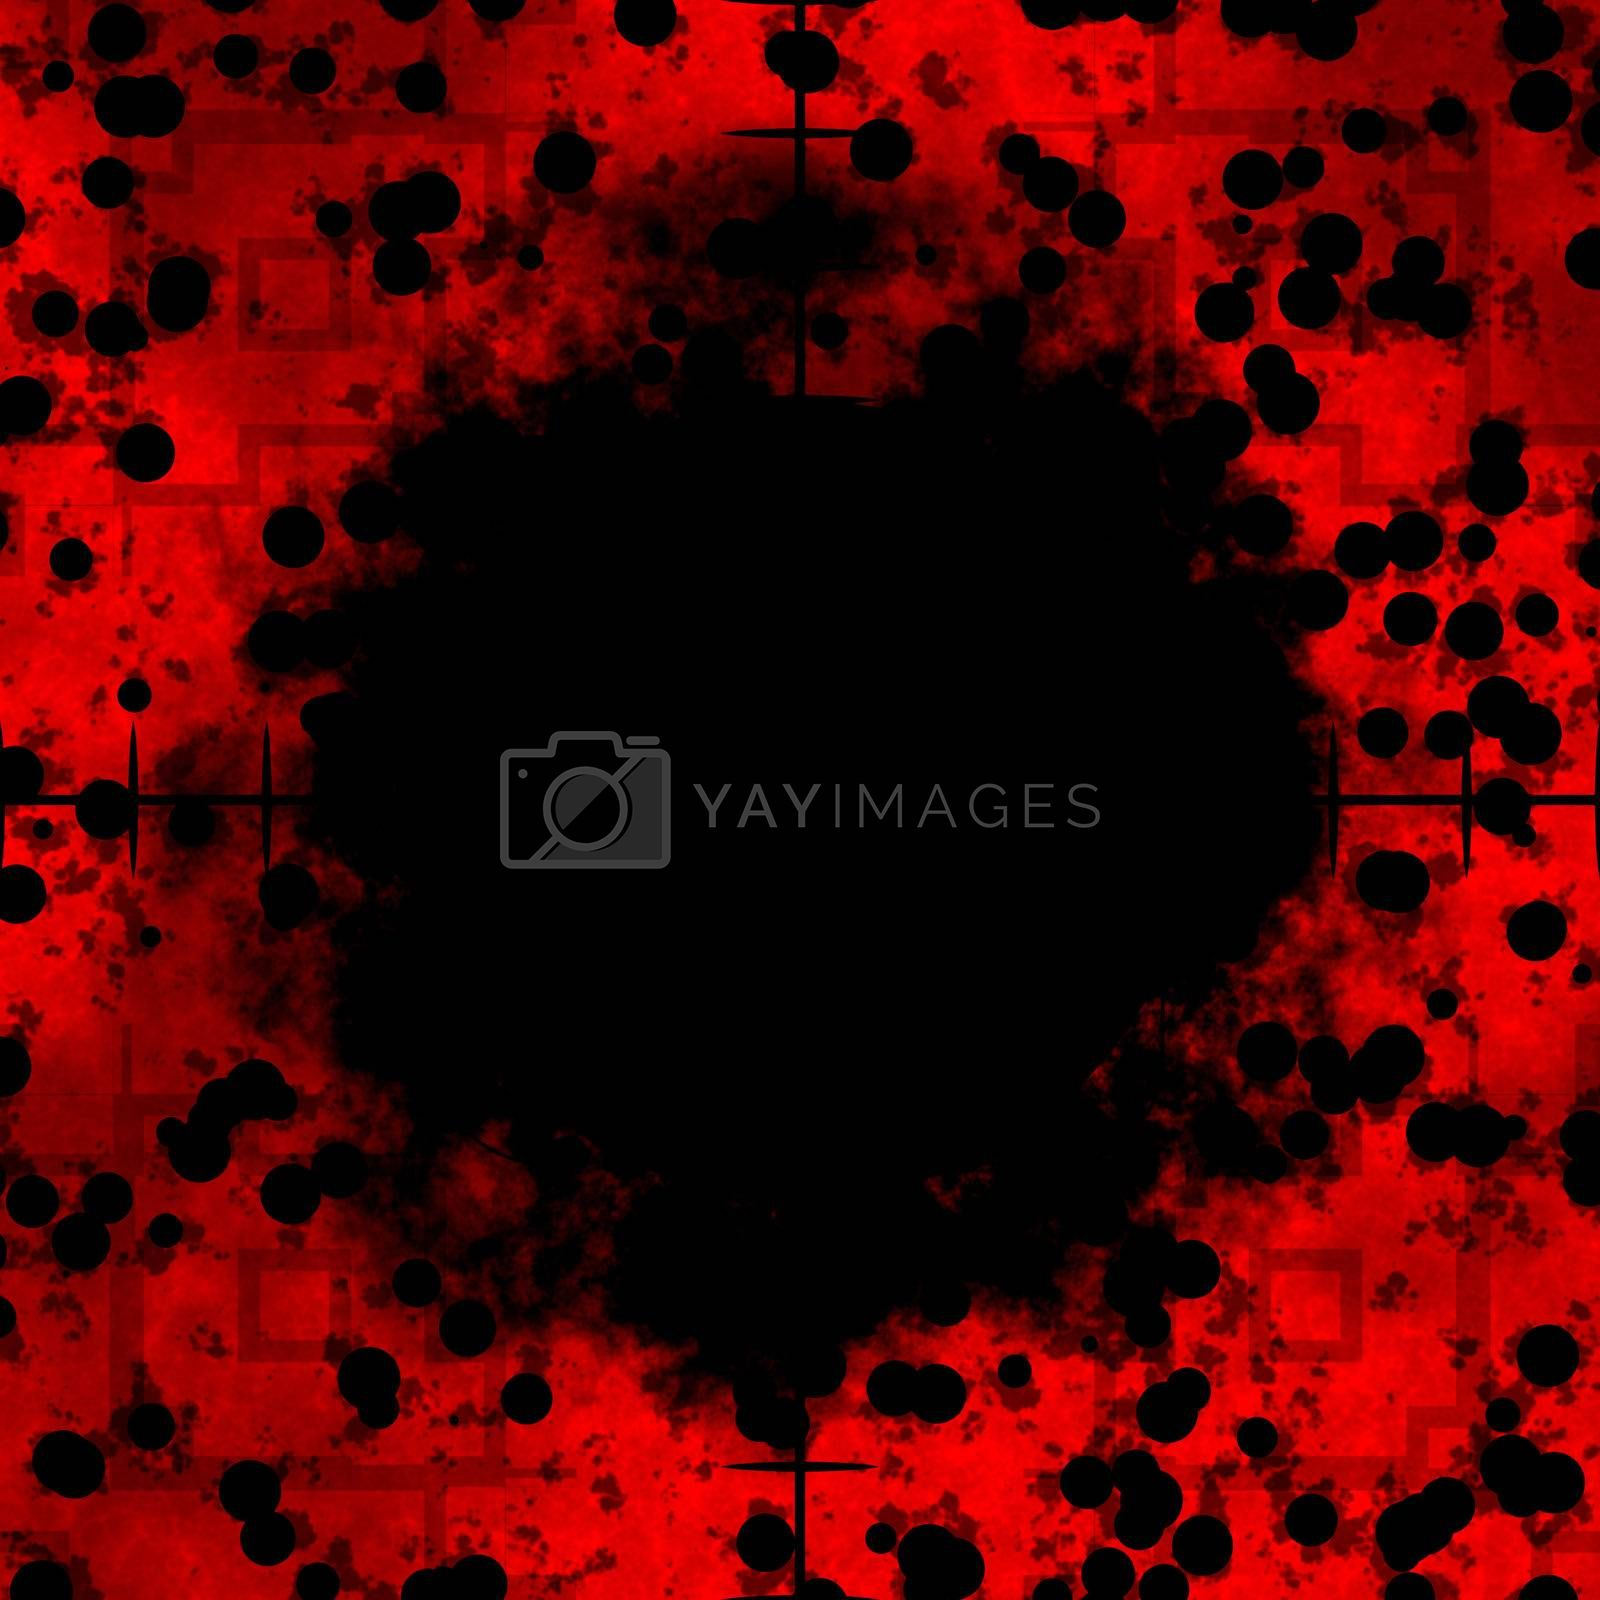 Red cells frame or border with sniper rifle crosshairs with a black center area.